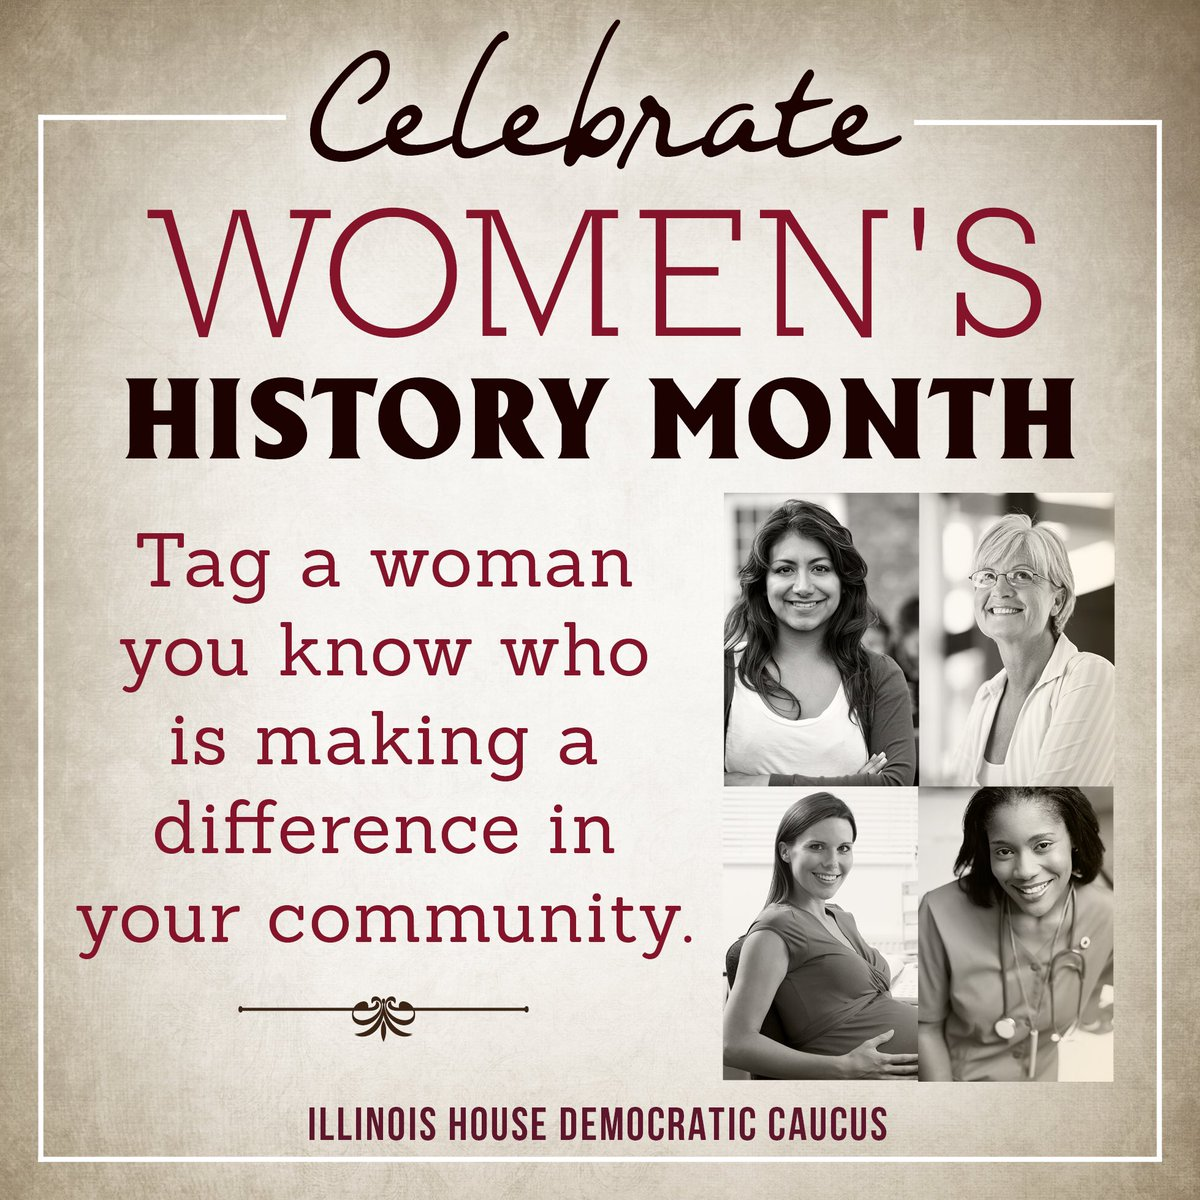 test Twitter Media - In celebration of Women's History Month, I'm tagging women who I believe are doing great work in our community. @stacydavisgates @DriXander https://t.co/VPyNWYgBCE